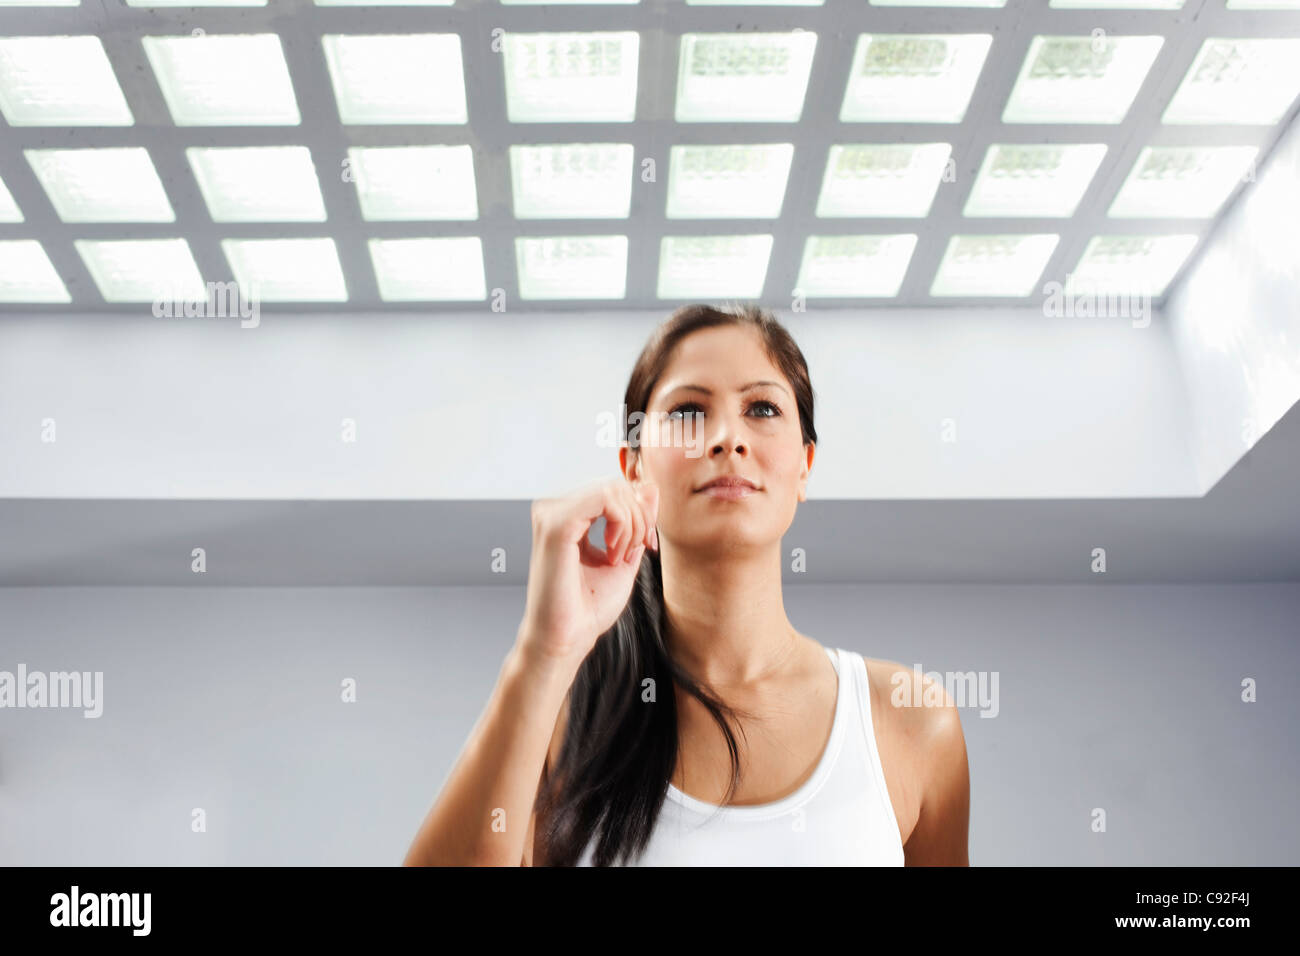 Woman exercising indoors - Stock Image